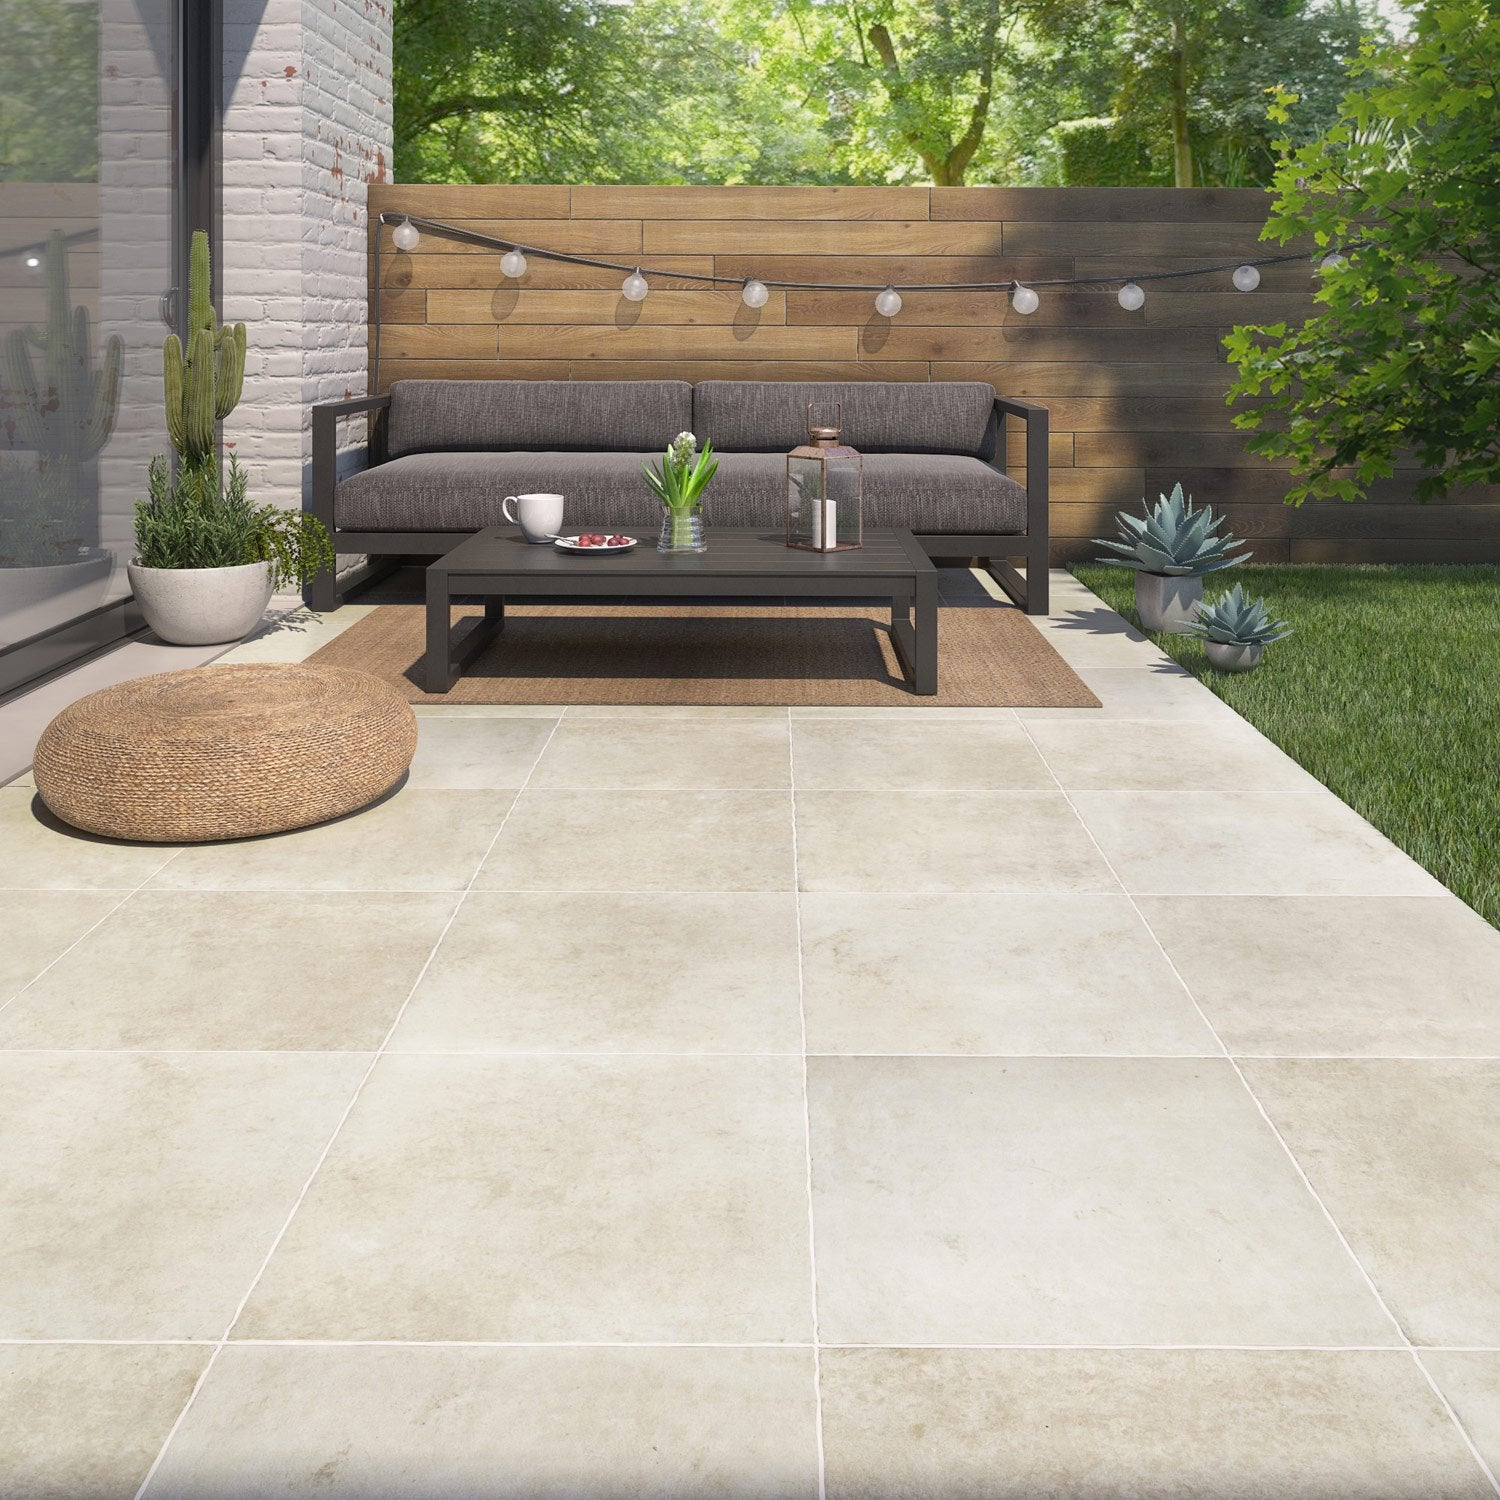 Carrelage sol et mur beige effet pierre monast re x l for Grand carrelage exterieur